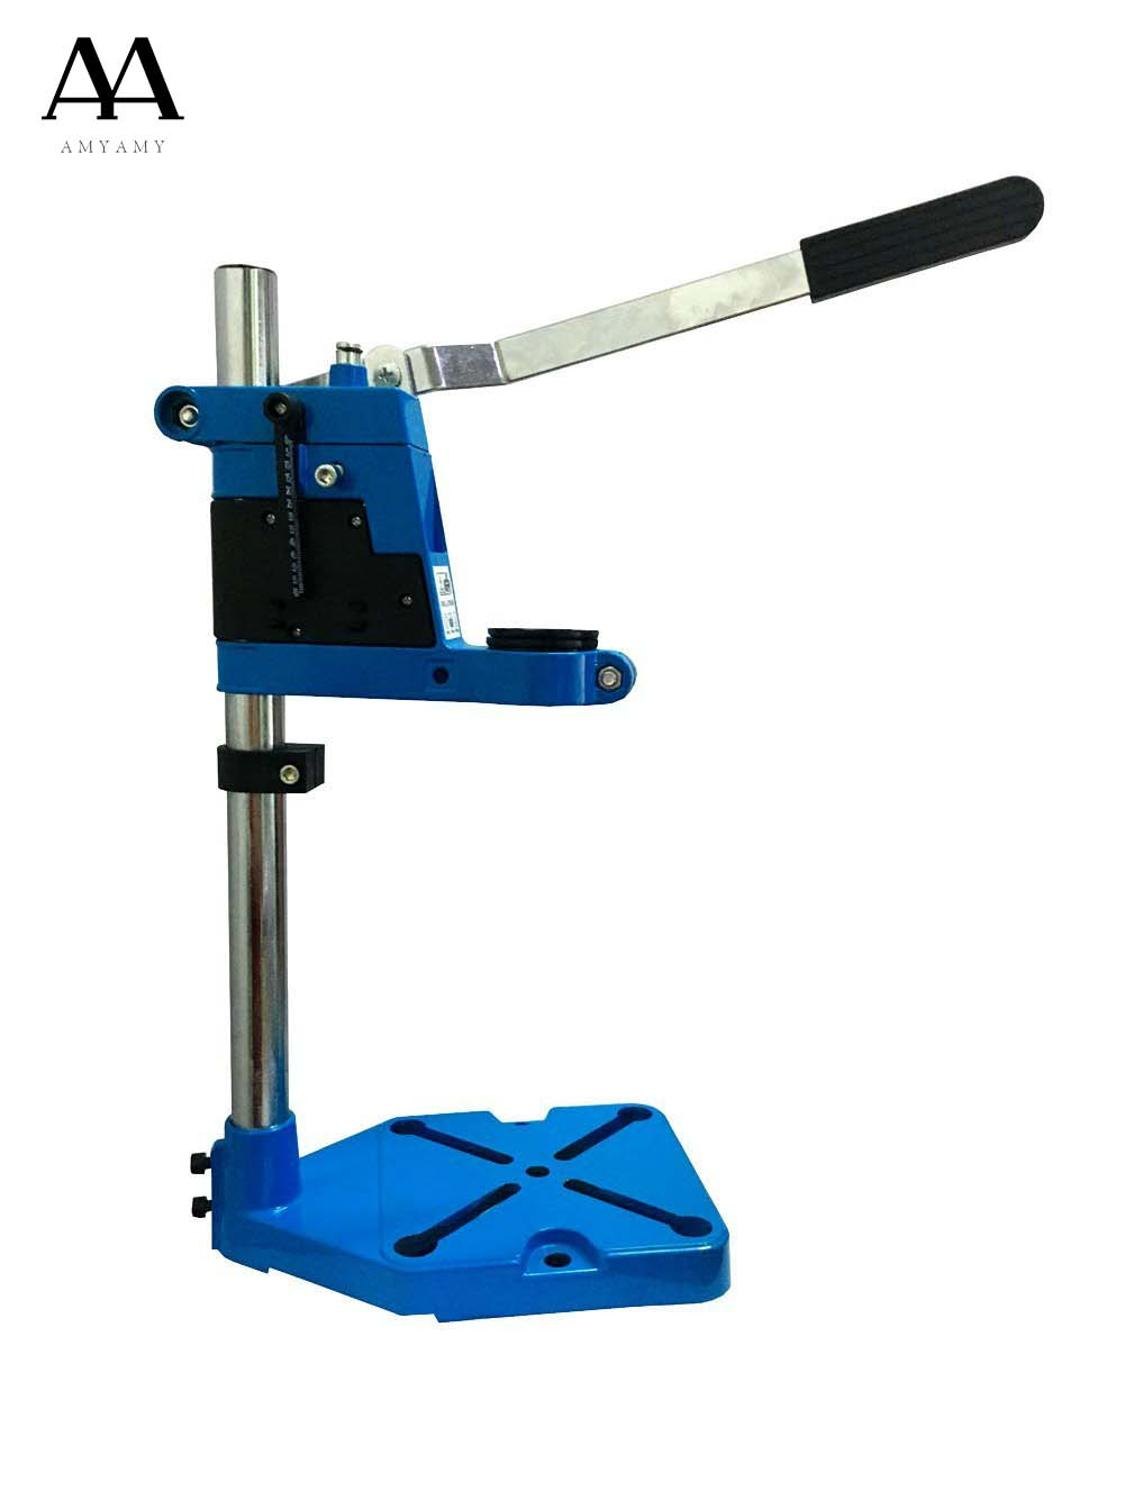 AMYAMY Floor Drill Press Stand Table for Drill Workbench Repair Tool Clamp for Drilling Collet drill Press Table 35 & 43mm